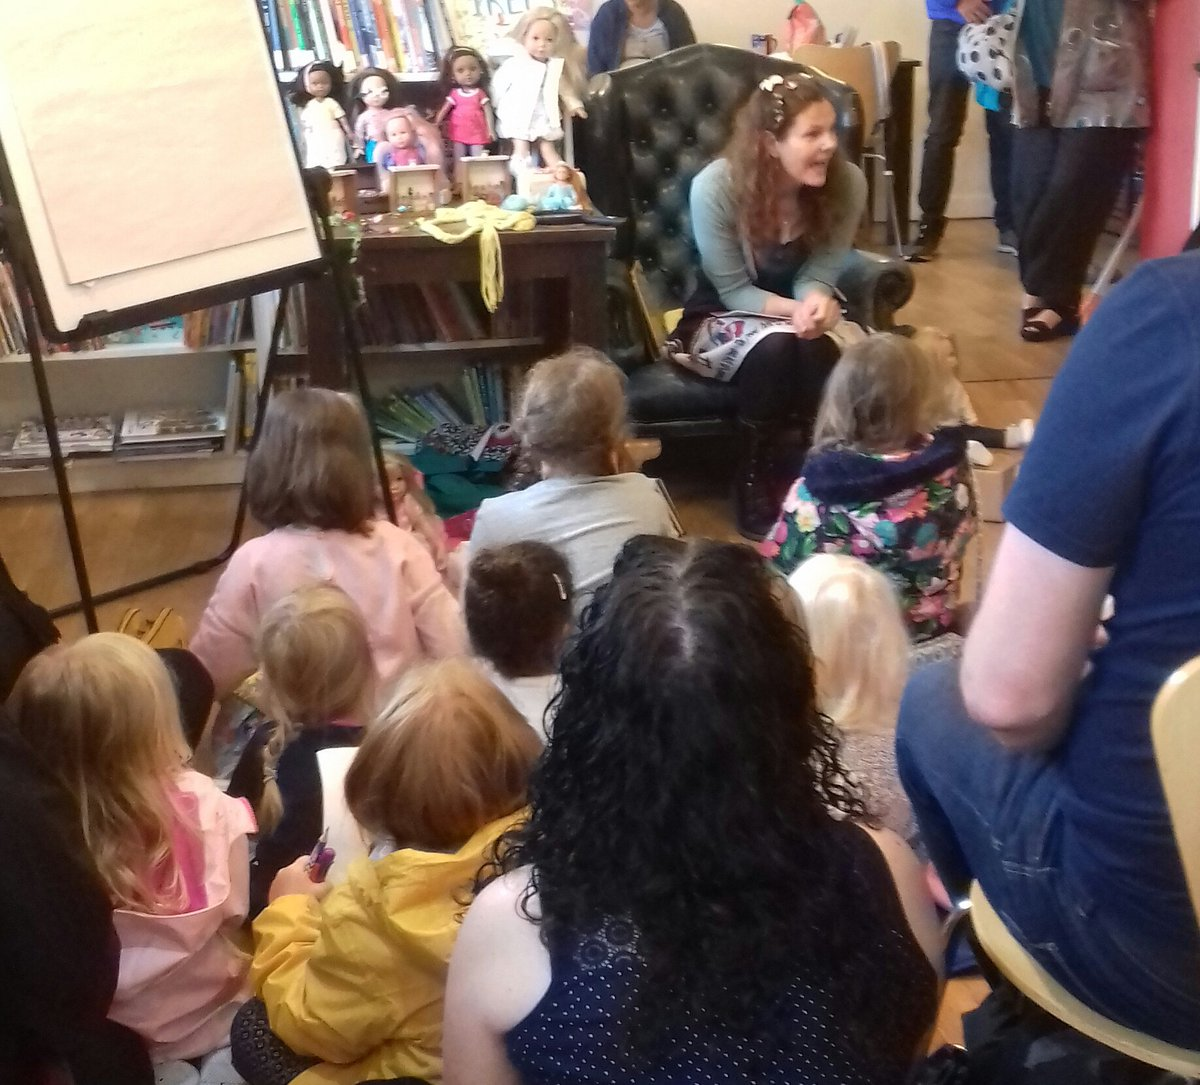 The lovely @AbieLongstaff has a whole shop full of avid #FairytaleHairdresser fans listening to Kitty Lacey and Thumbelinas adventure 🌸🌷🌼 A perfect way to cheer up a rainy morning! @PuffinBooks